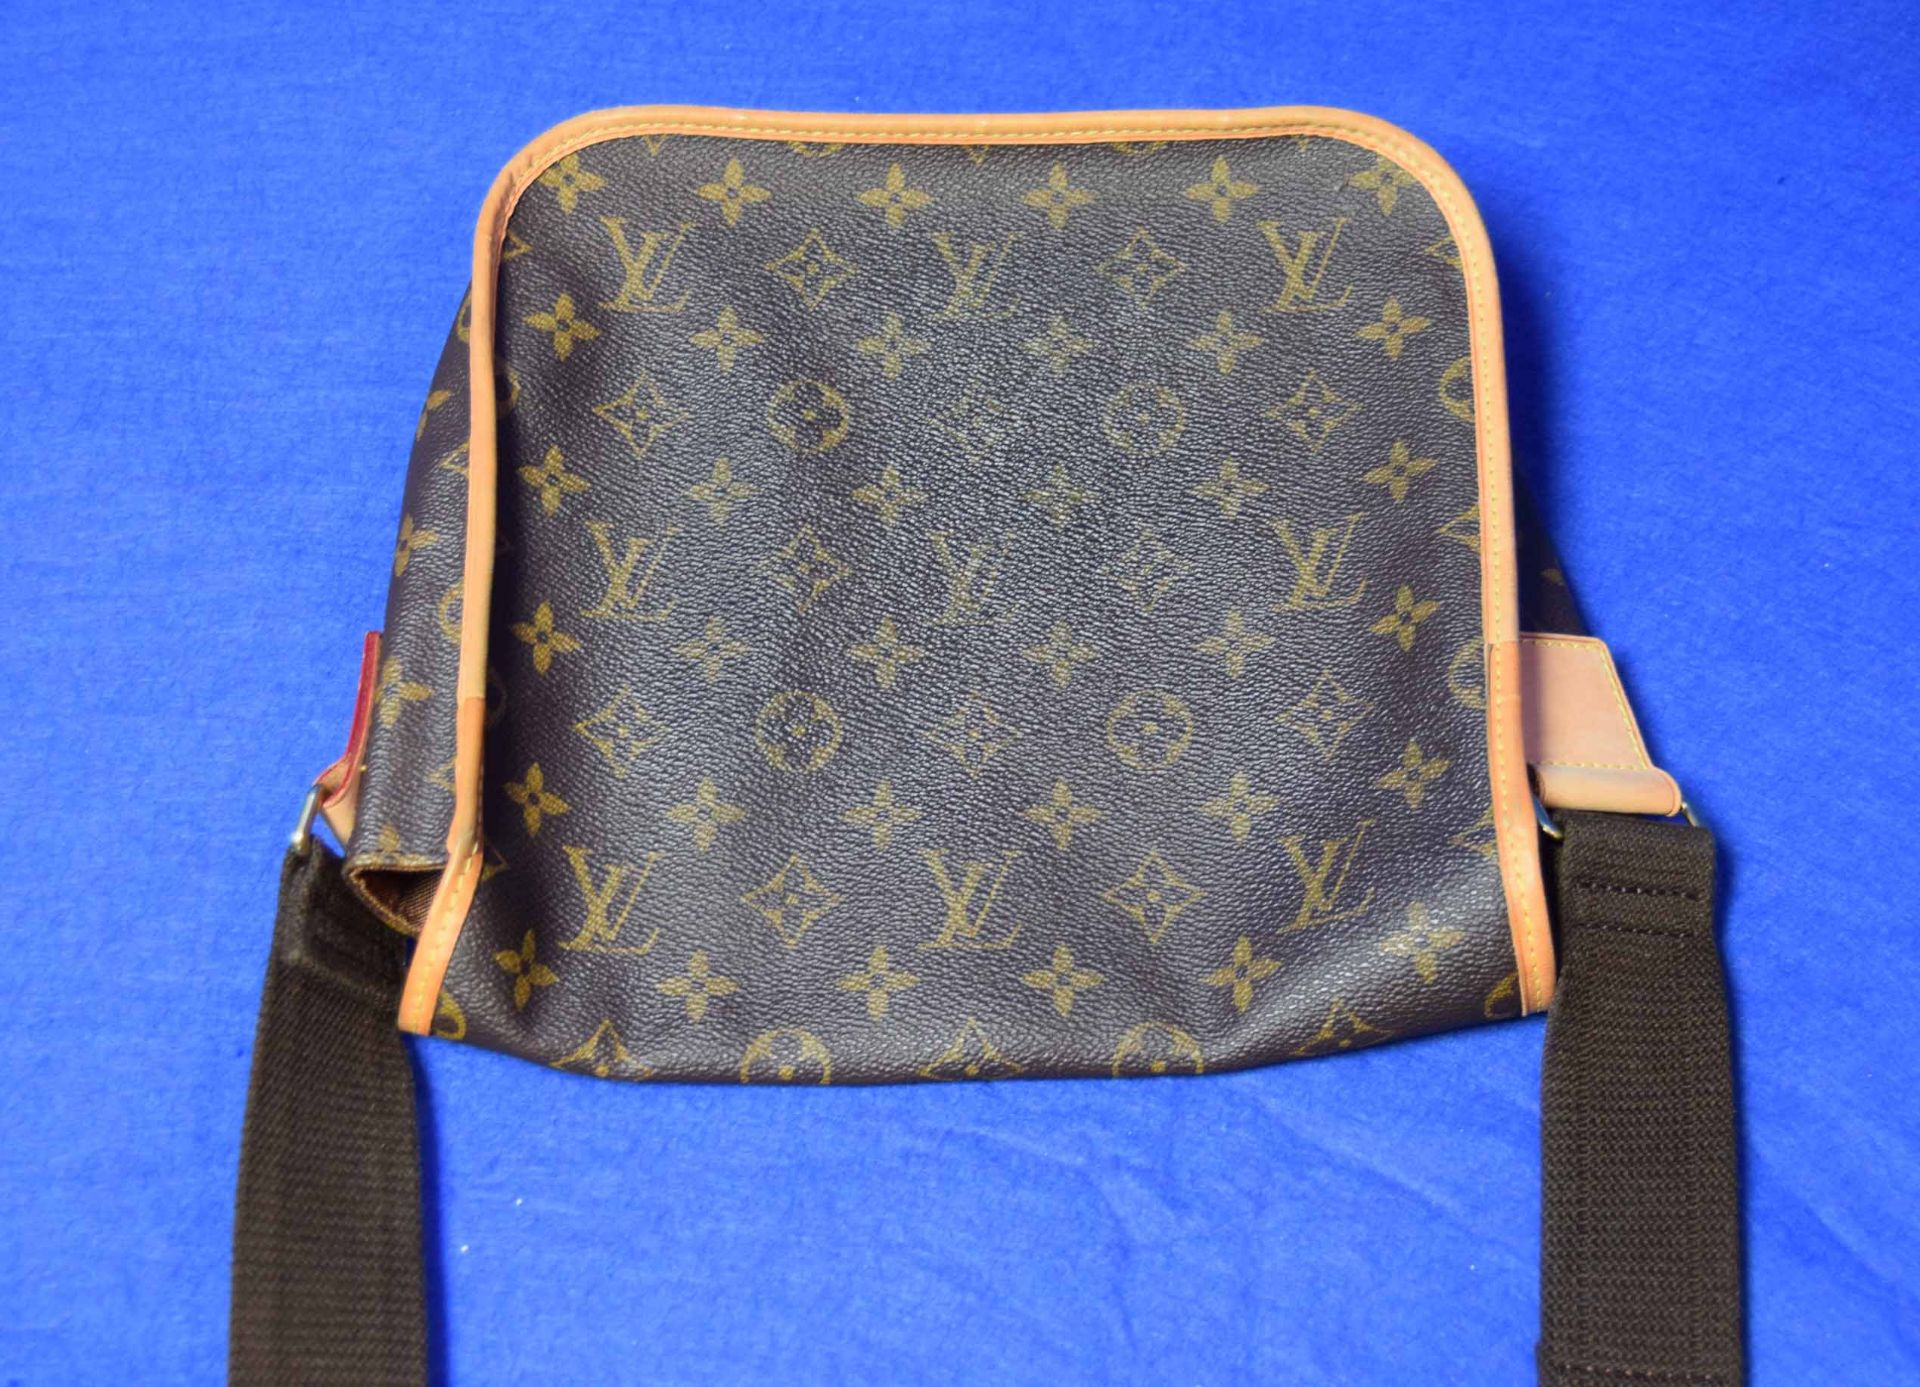 A LOUIS VUITTON Messenger Bosphore Cross Body Shoulder Bag in Chocolate Brown/Camel Leather with - Image 3 of 7